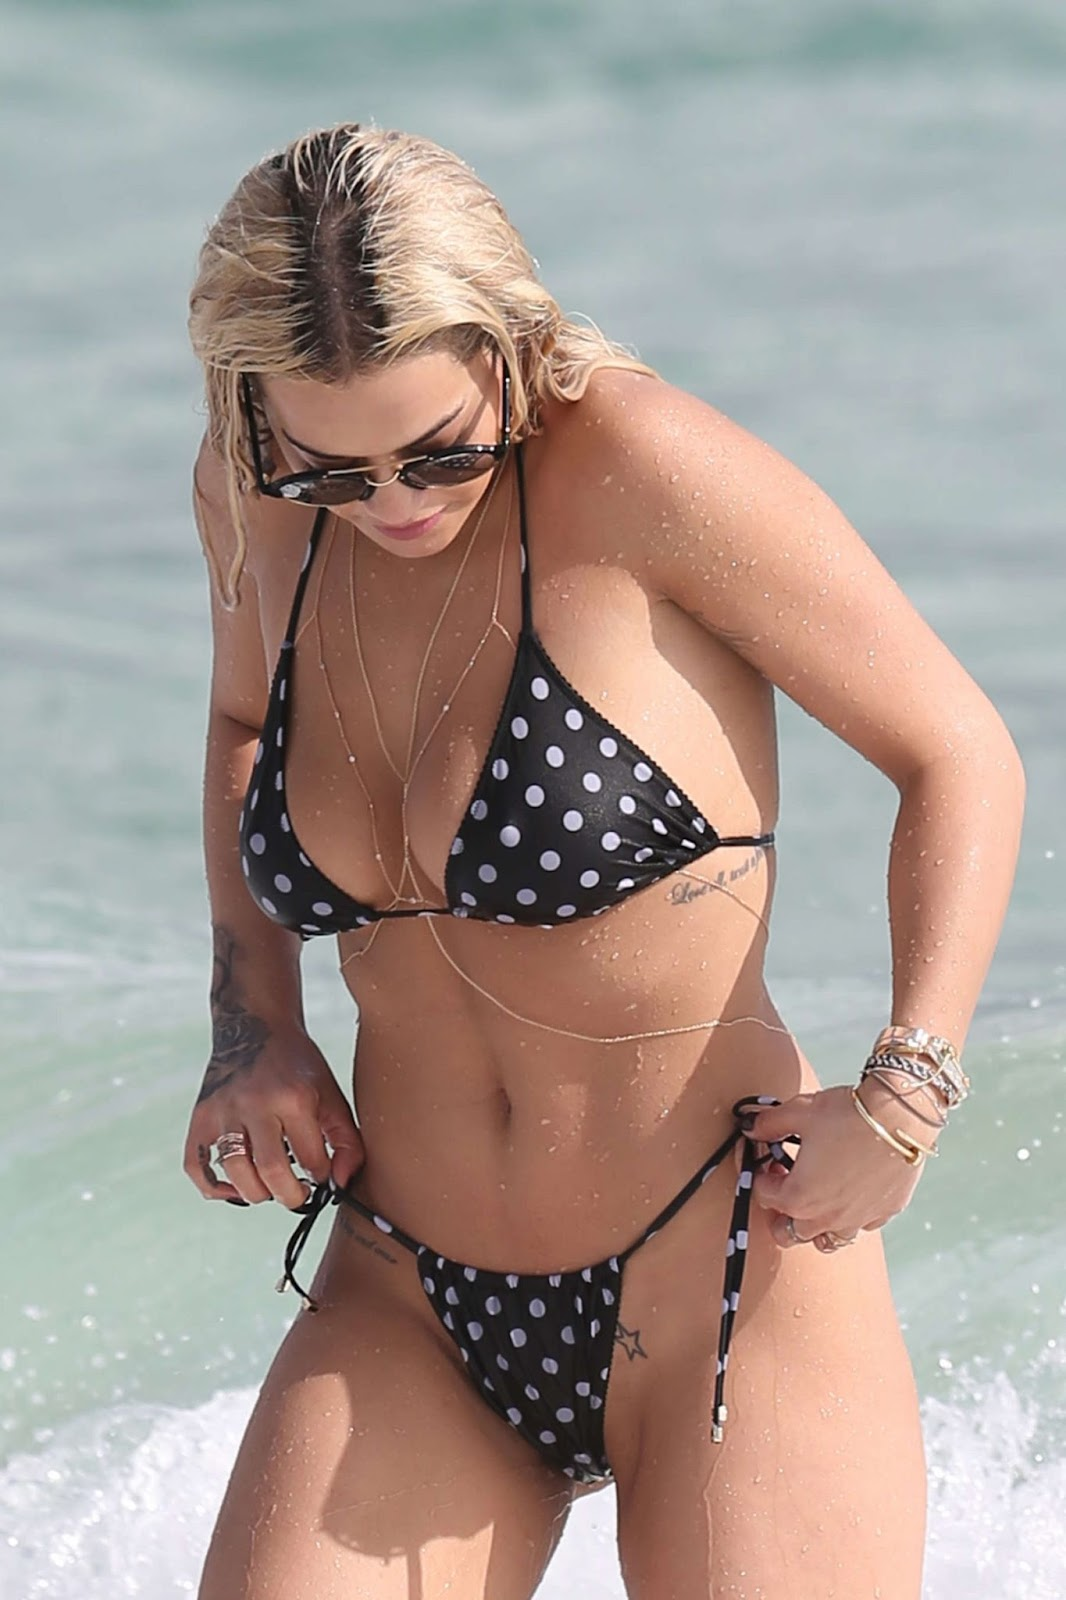 Rita Ora in Bikini in Miami - Photo Rita Ora 2016